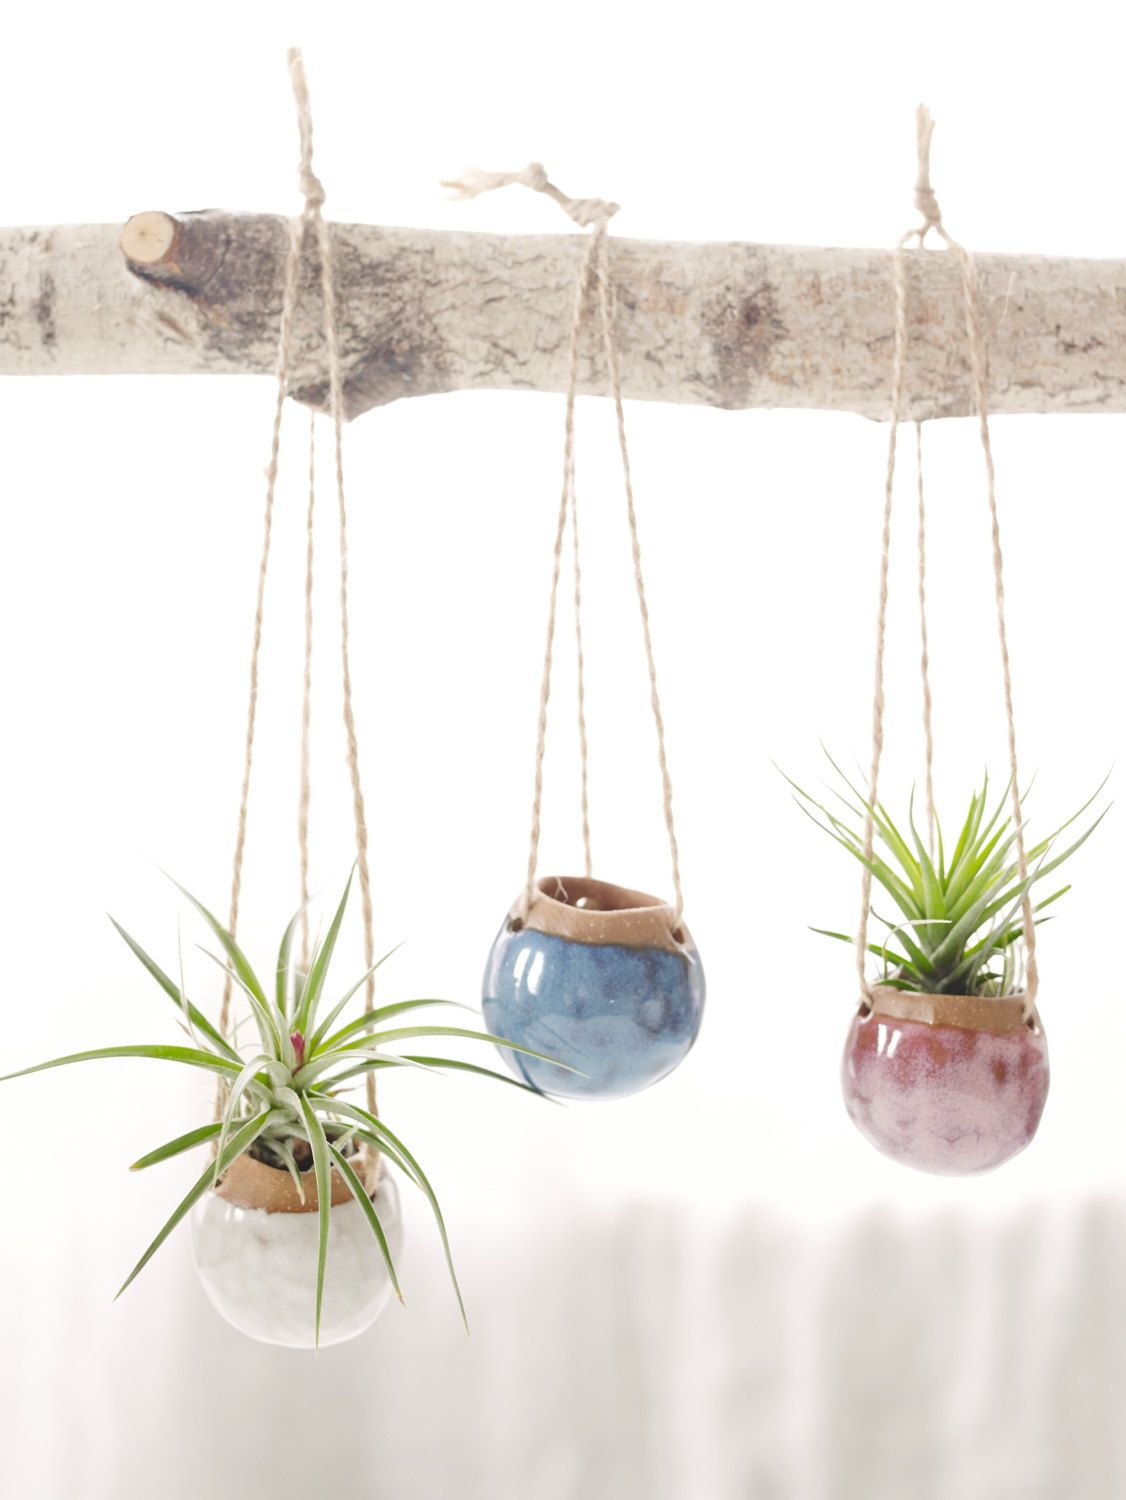 Etsyfindoftheday 4 19 15set of three small hanging planters in oasis fire opal and white by corpotterya trio of glazed hand pinched pottery planters